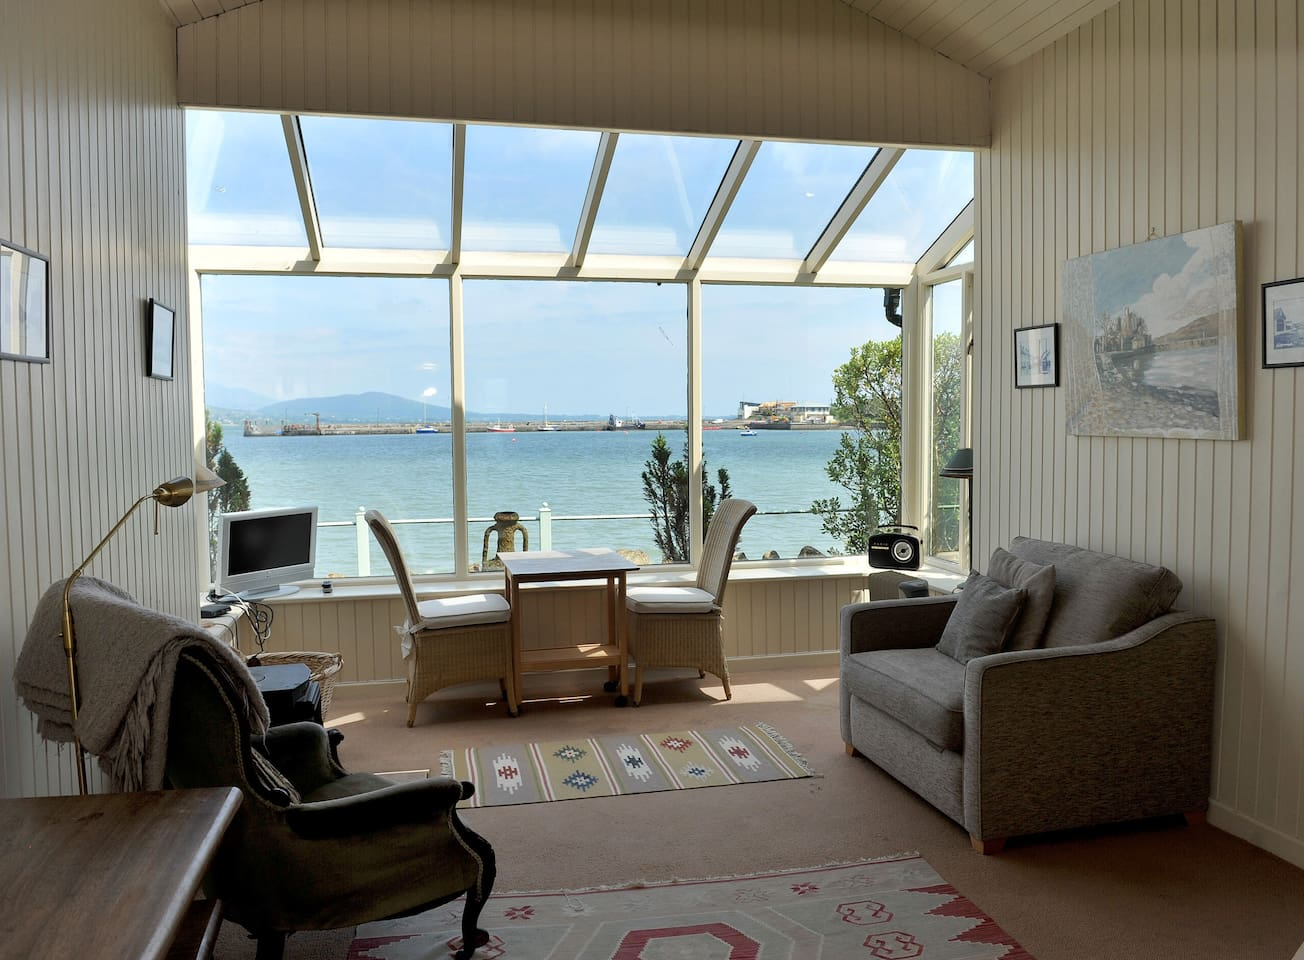 Floor to ceiling views of the Lough & Mournes!